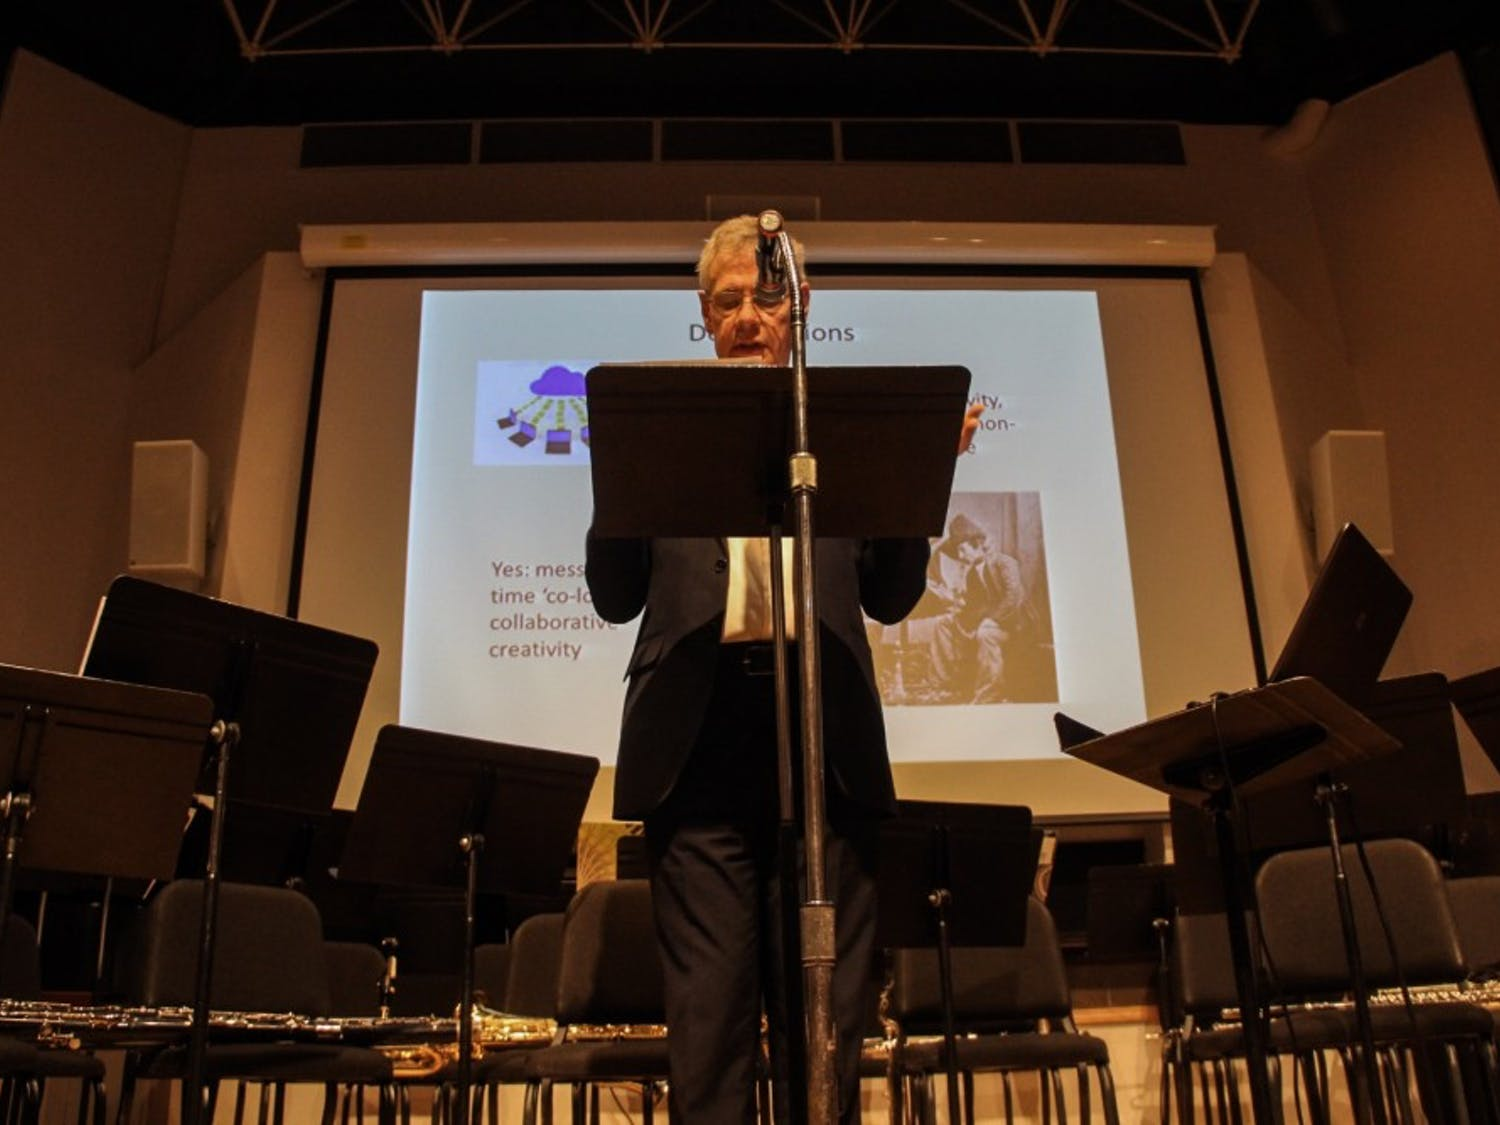 """Bill Bruford, former drummer of Yes and King Crimson, spoke at Baird Hall on Monday about his new book """"Uncharted: Creativity and the Expert Drummer."""""""